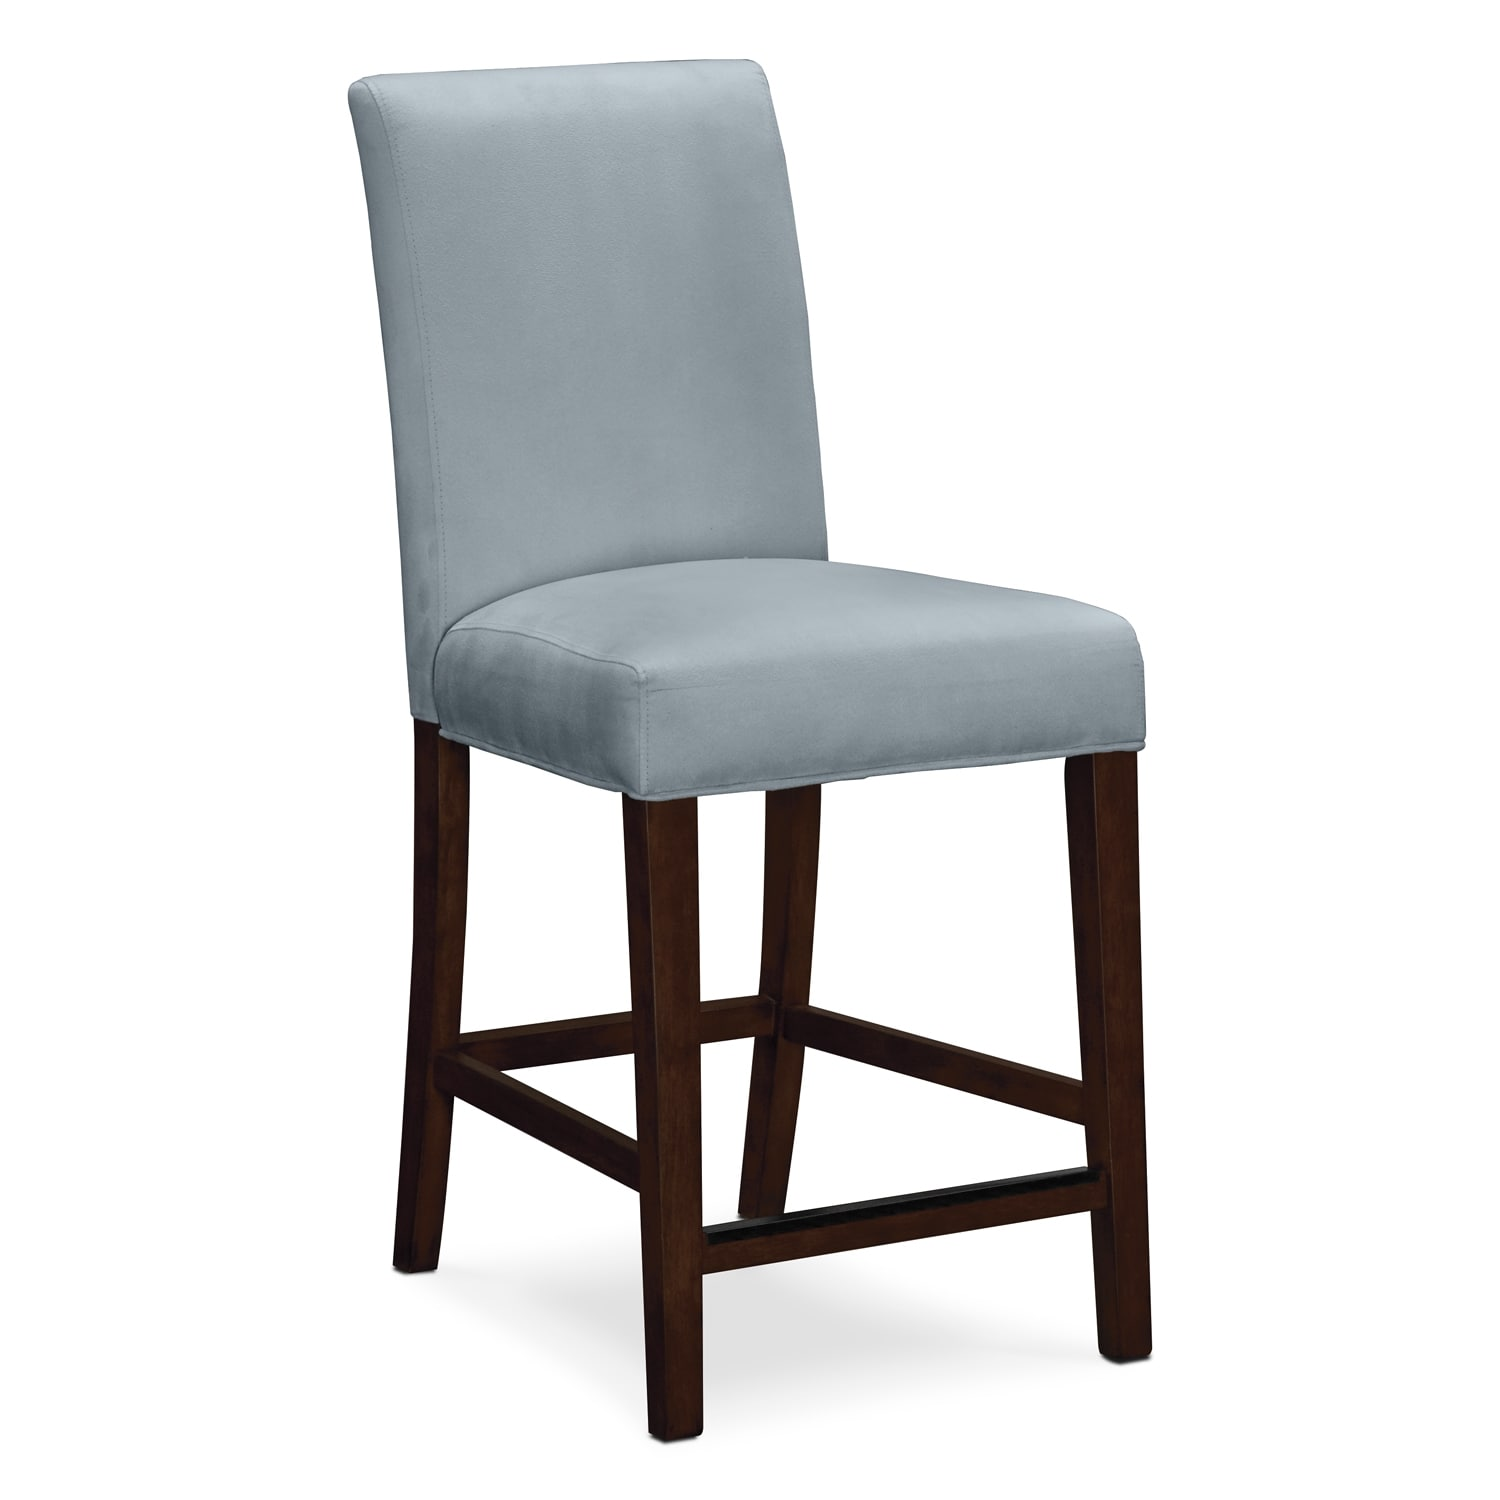 Alcove counter height stool aqua american signature furniture - Average height of bar stools ...